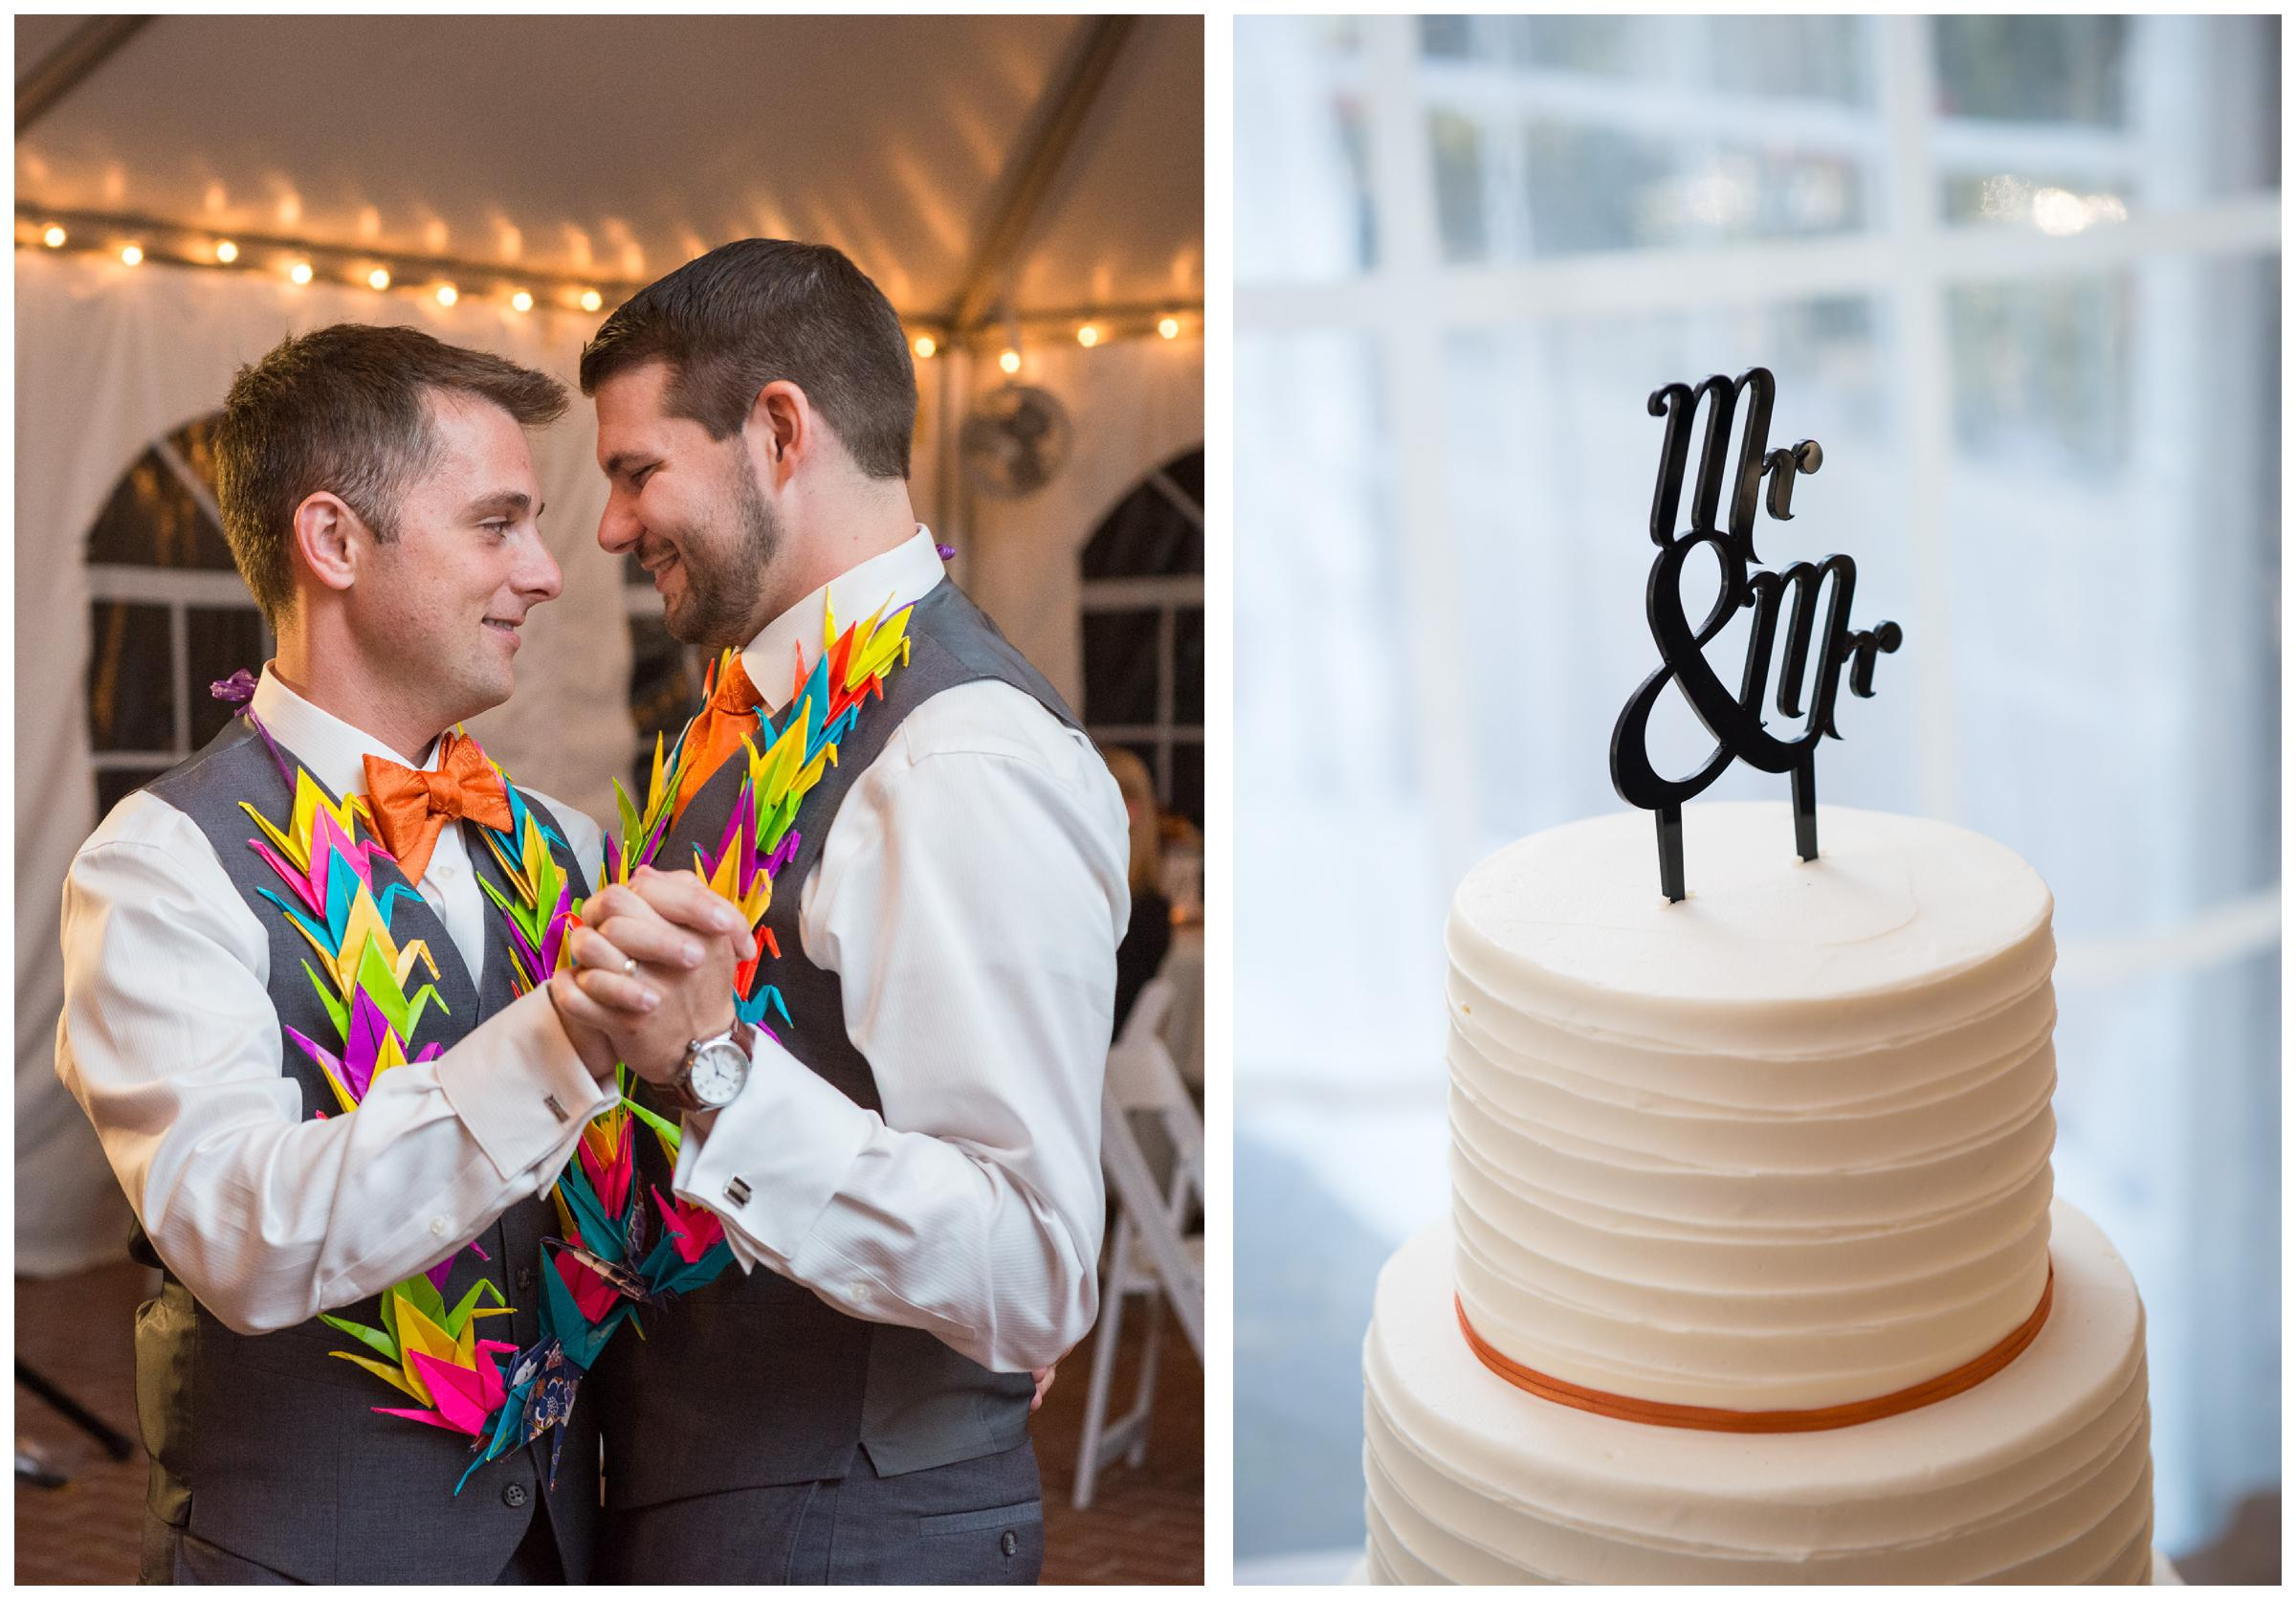 grooms' first dance and cake topper during same-sex wedding reception